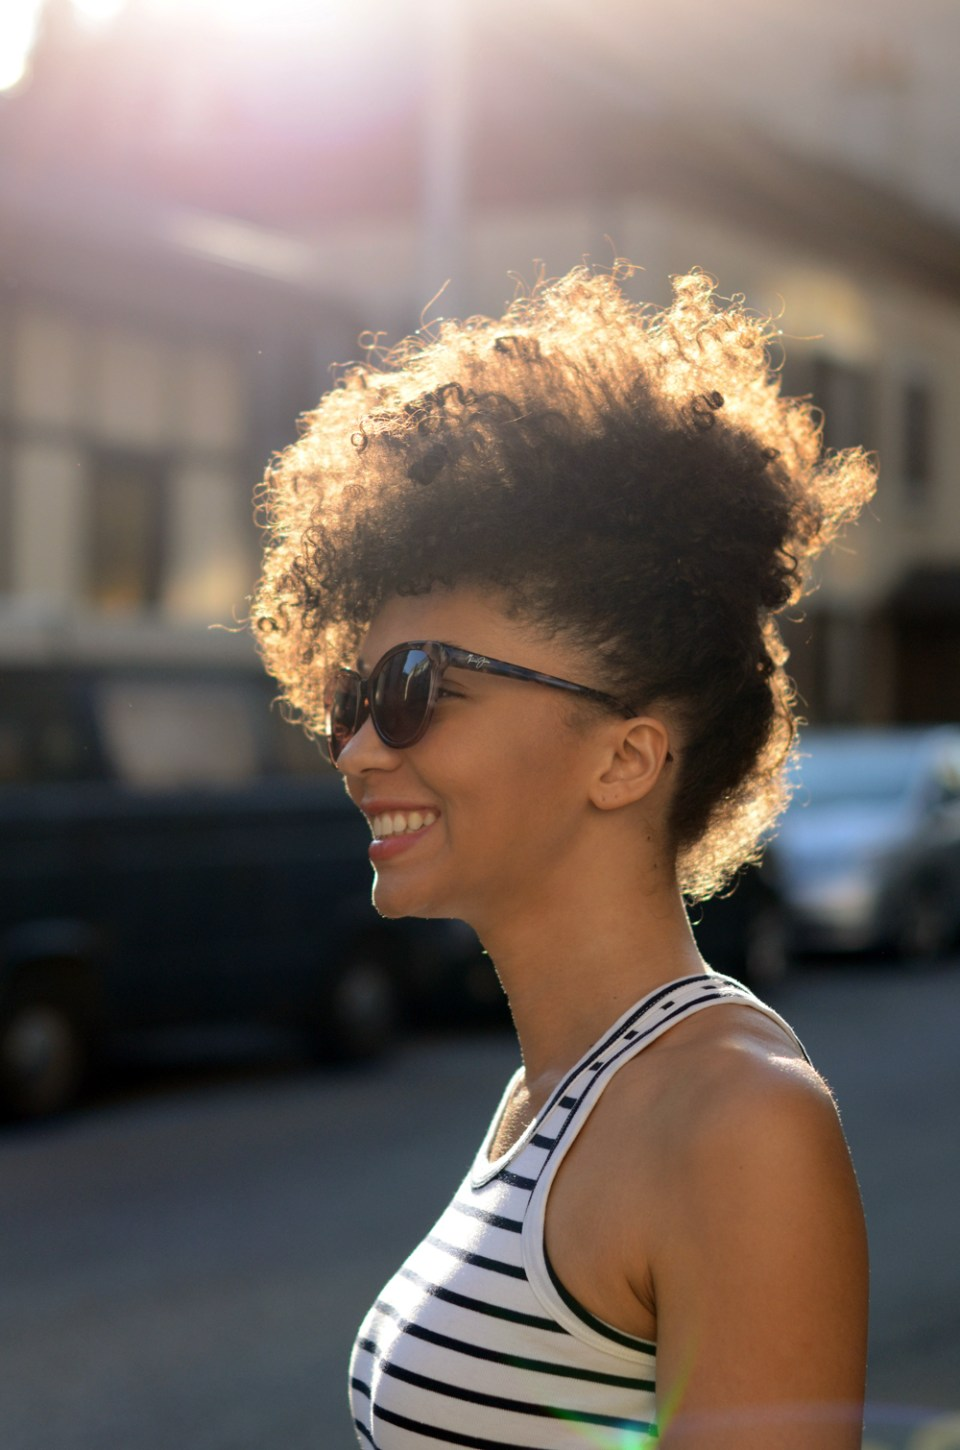 mercredie-blog-mode-geneve-suisse-blogueuse-bloggeuse-optic2000-lunettes-de-soleil-MAUI-JIM-SUNSHINE-725-64-natural-hair-frohawk